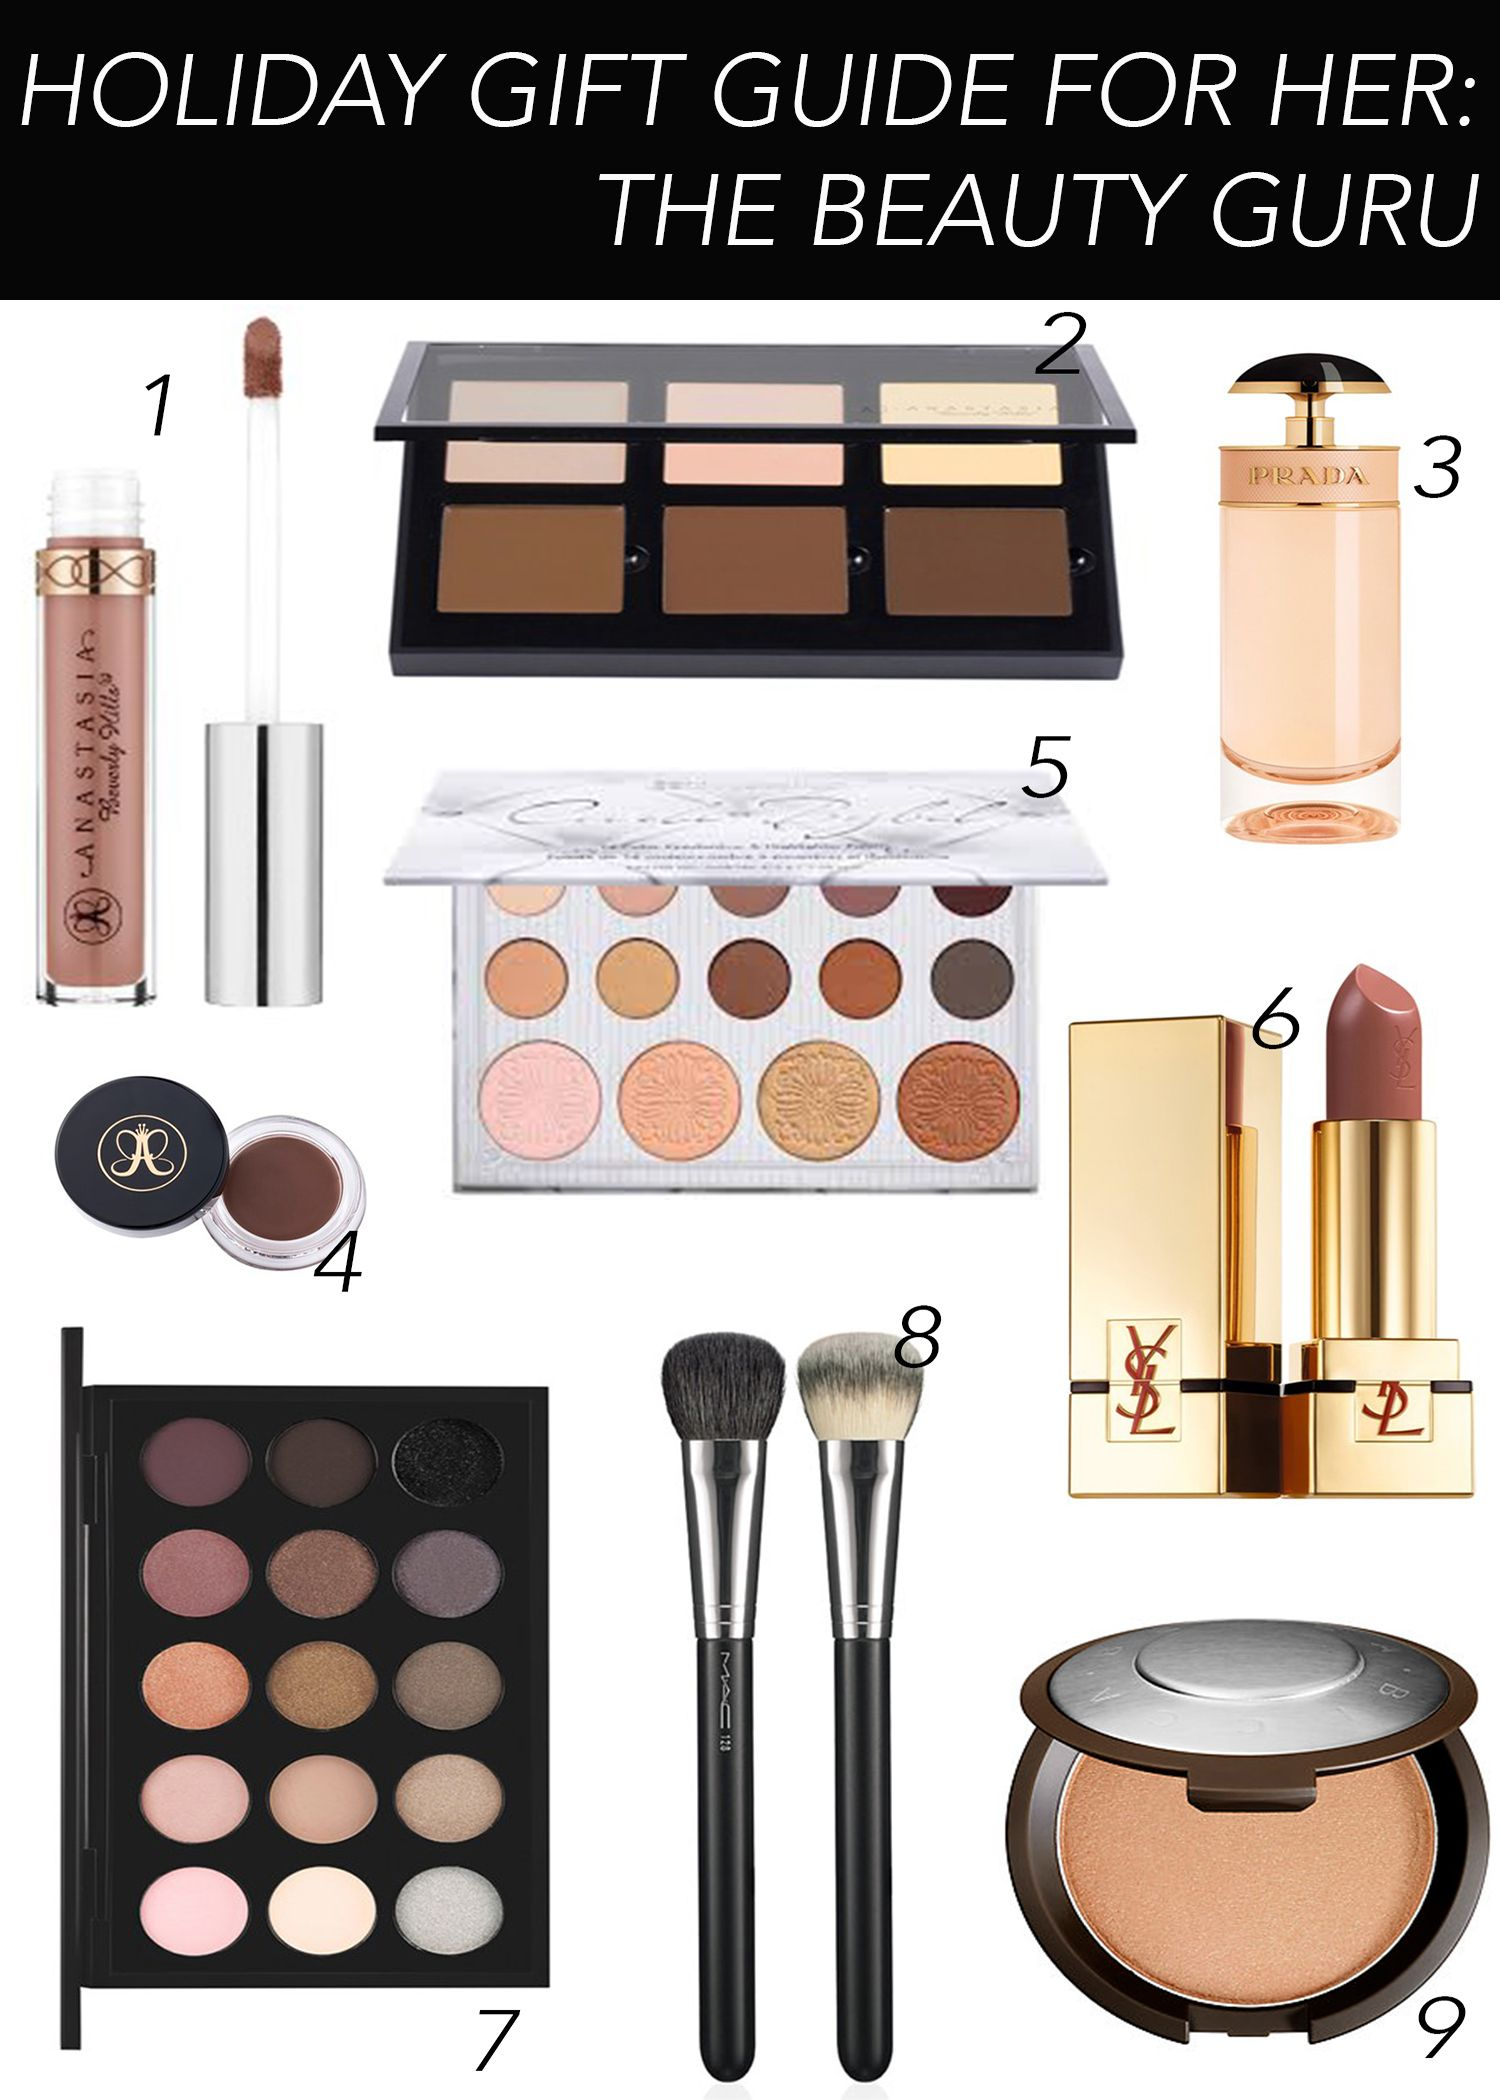 Holiday Gift Guide for the Beauty Guru